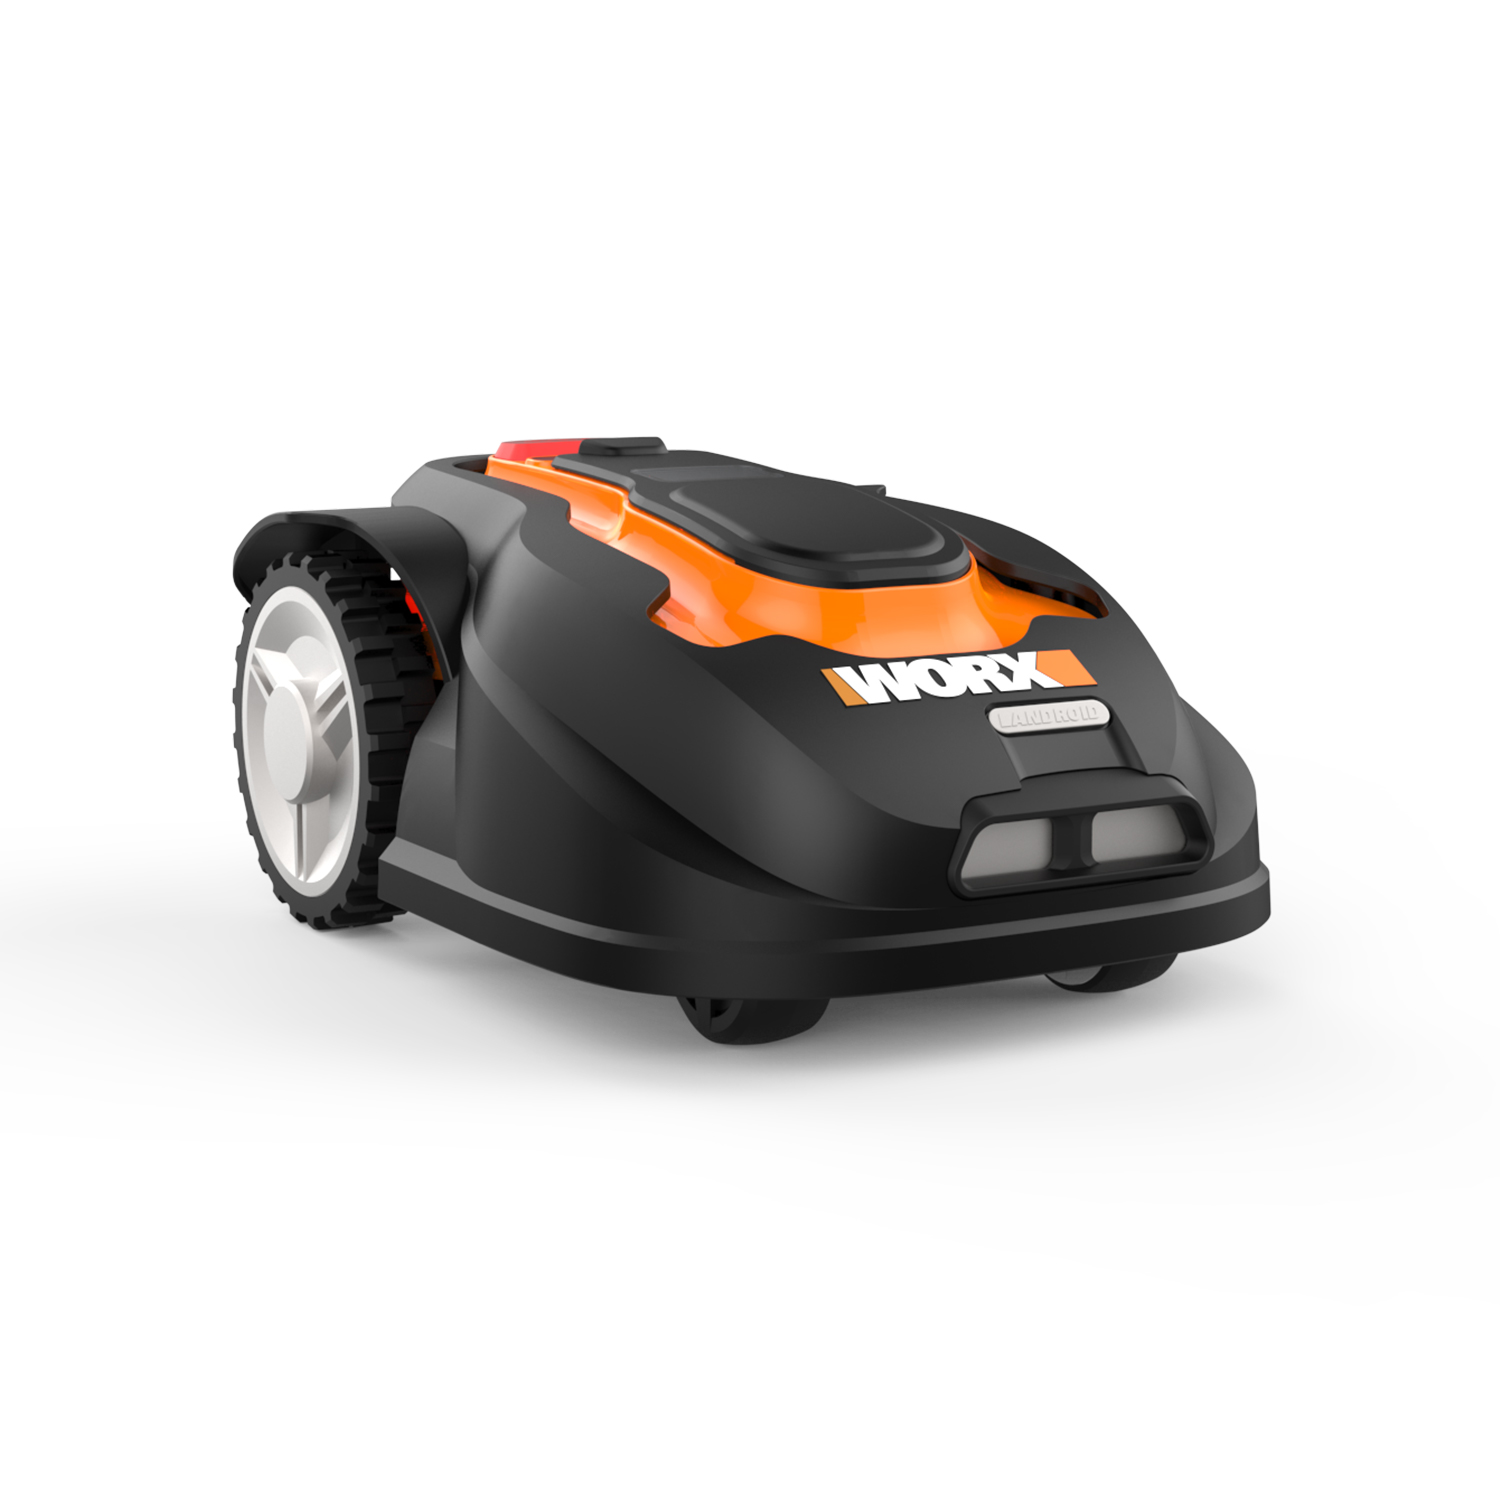 Worx 28V Cordless Electric Landroid Mower